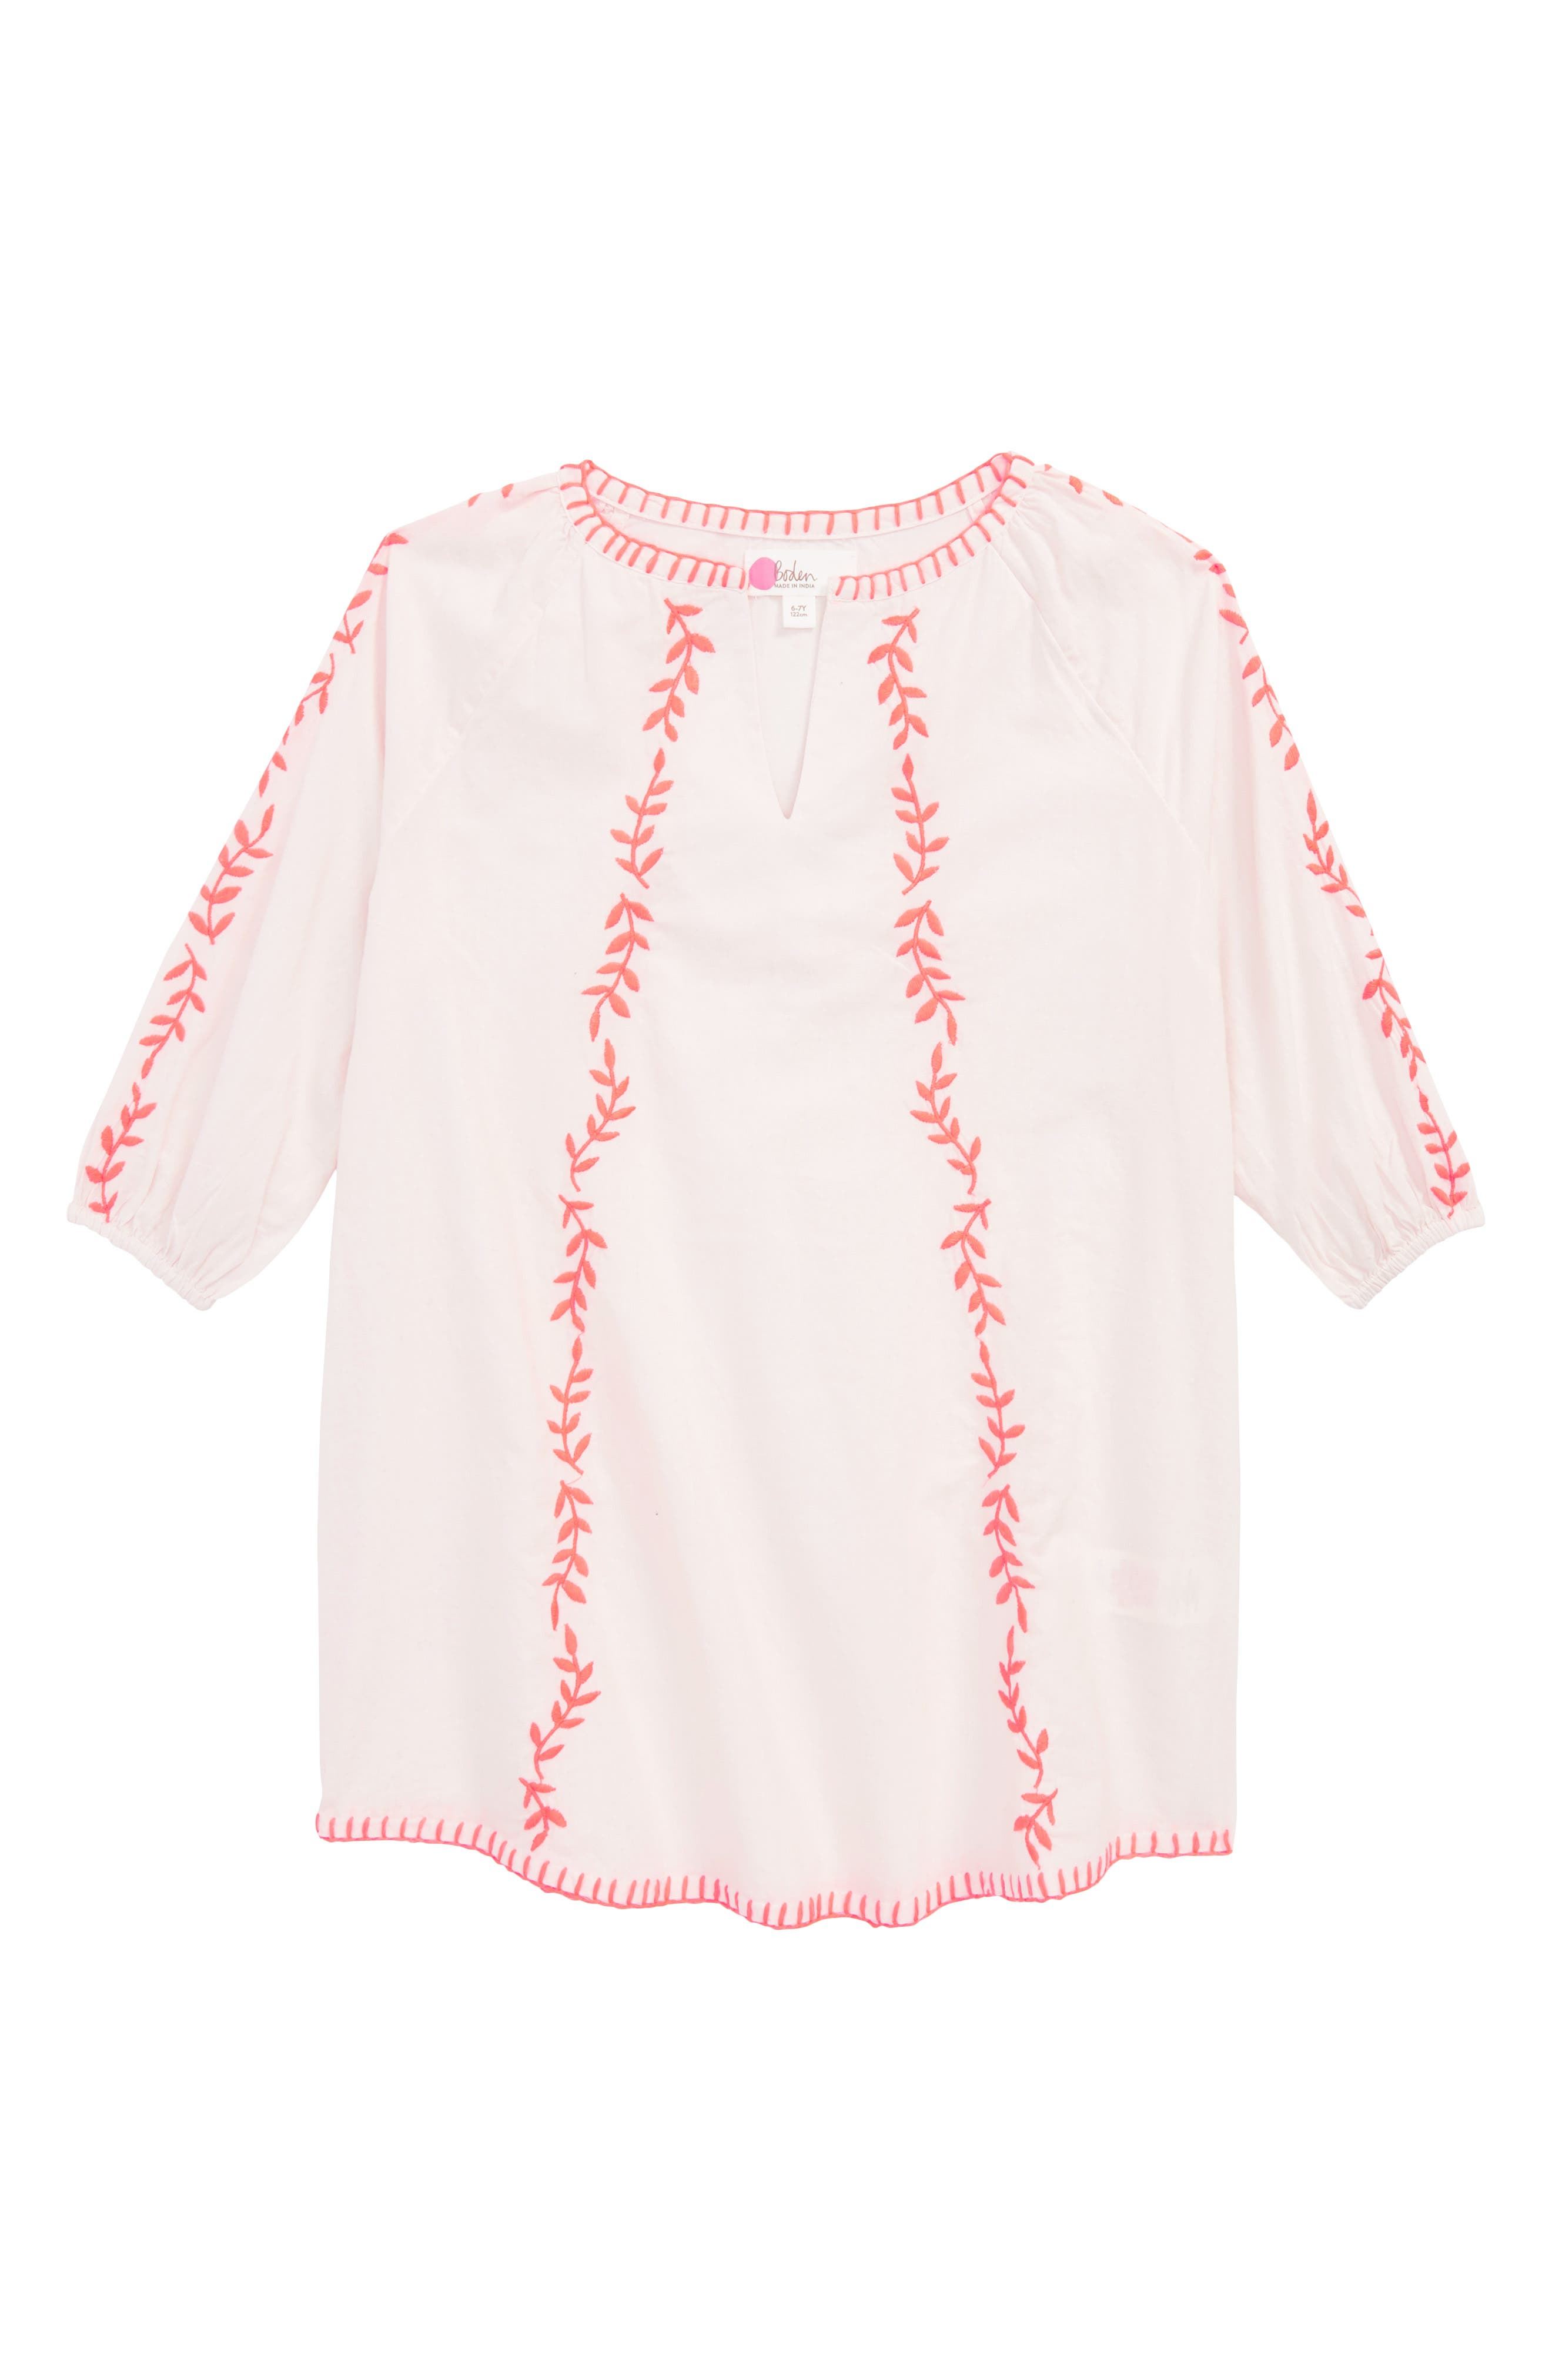 MINI BODEN,                             Embroidered Cover-Up Caftan,                             Main thumbnail 1, color,                             684